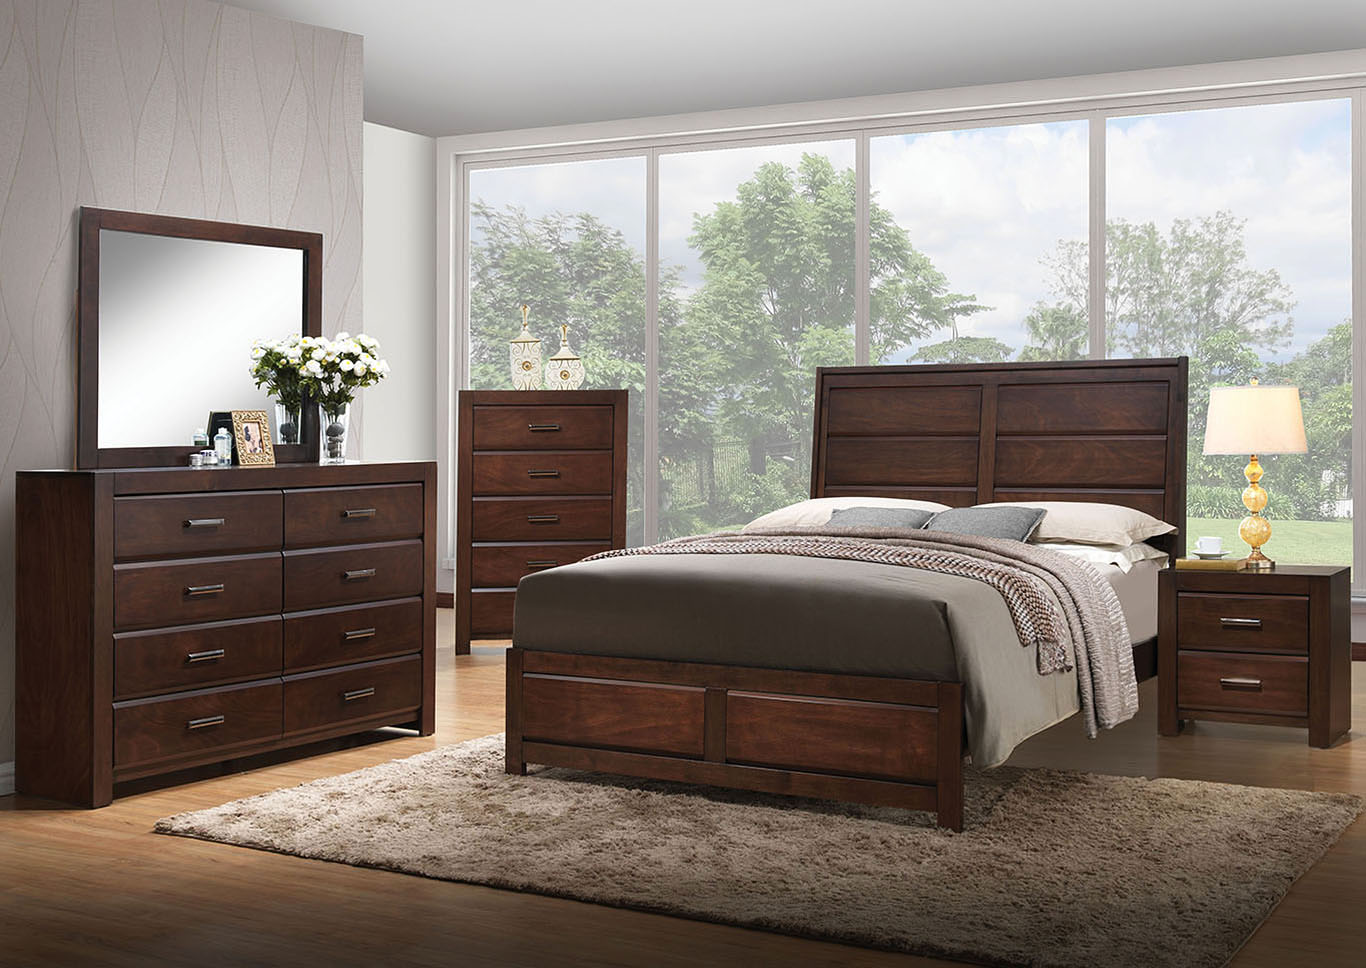 Oberreit Walnut Dresser,Acme